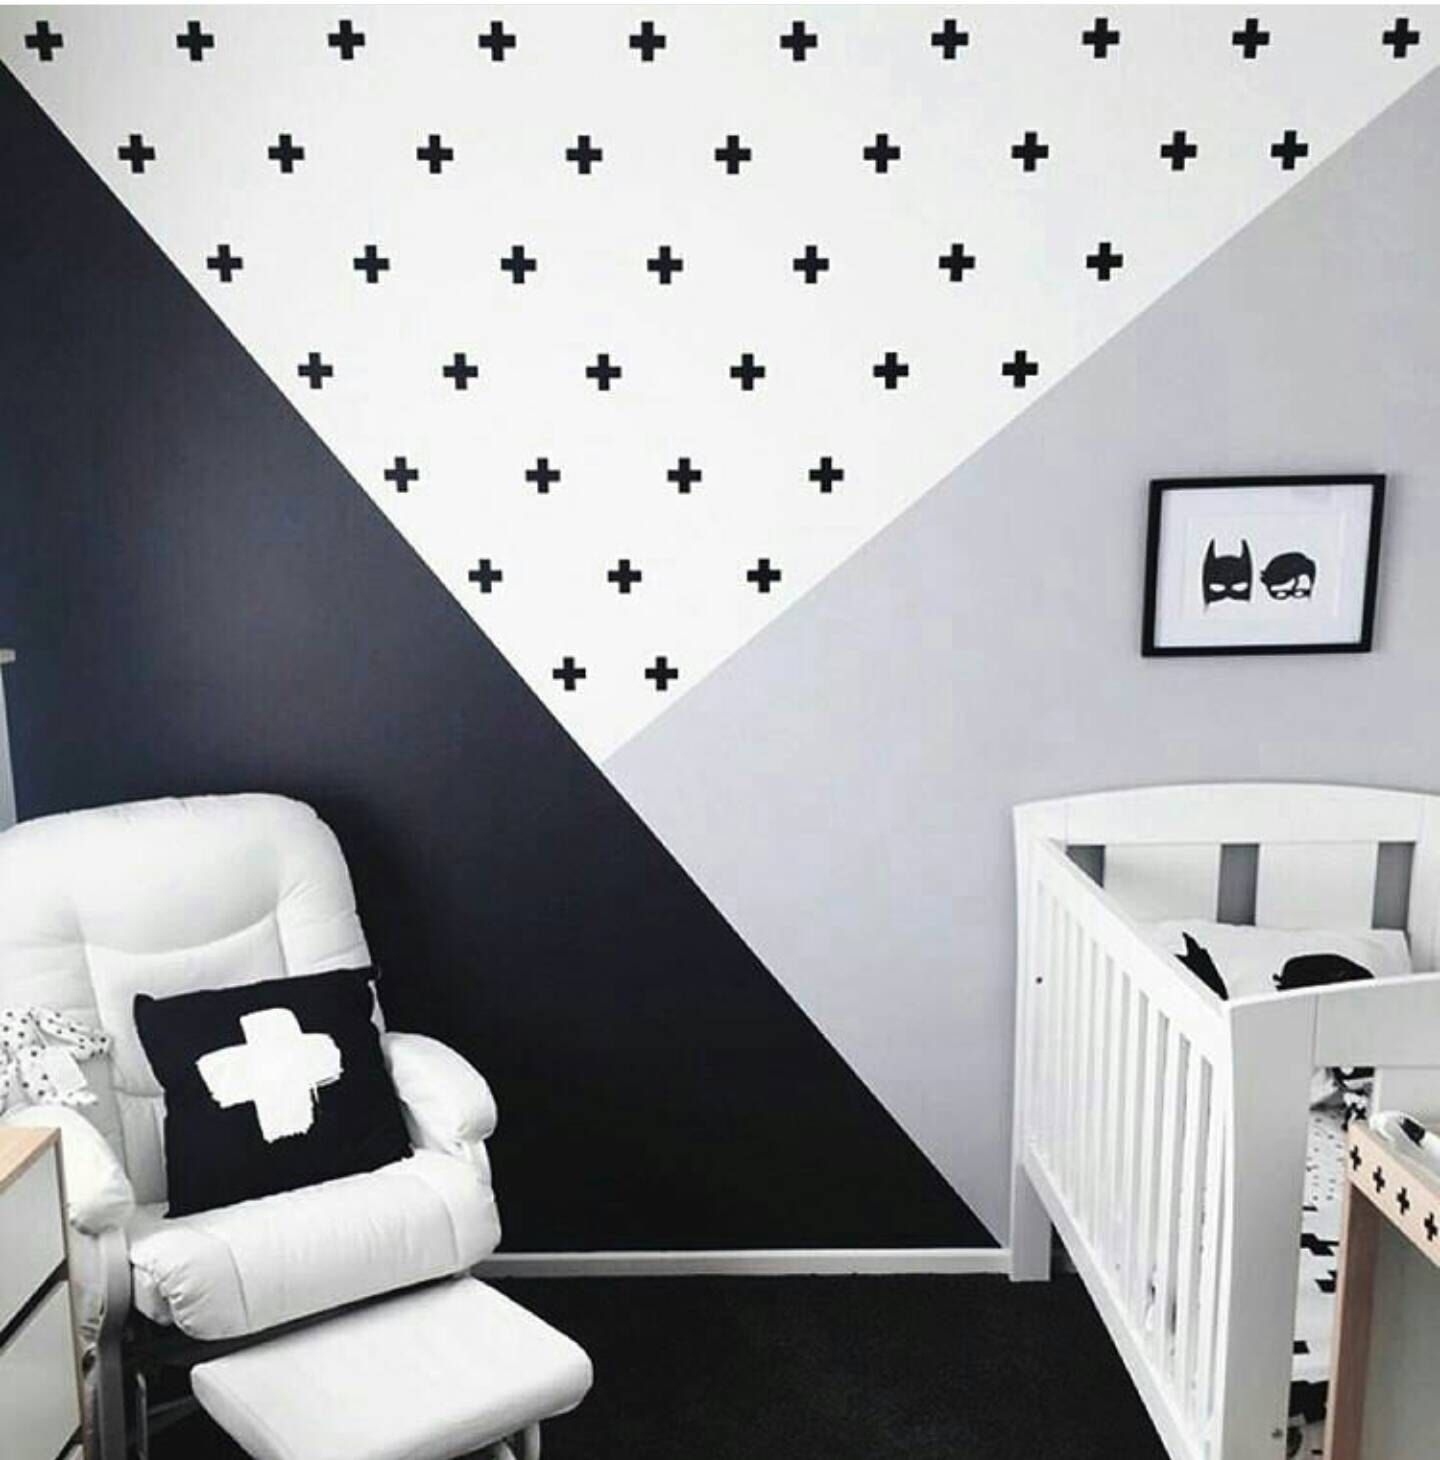 Swiss Cross Wall Decals, Plus Sign Wall Stickers, Geometric Accent With Regard To Newest Geometric Shapes Wall Accents (Gallery 13 of 15)